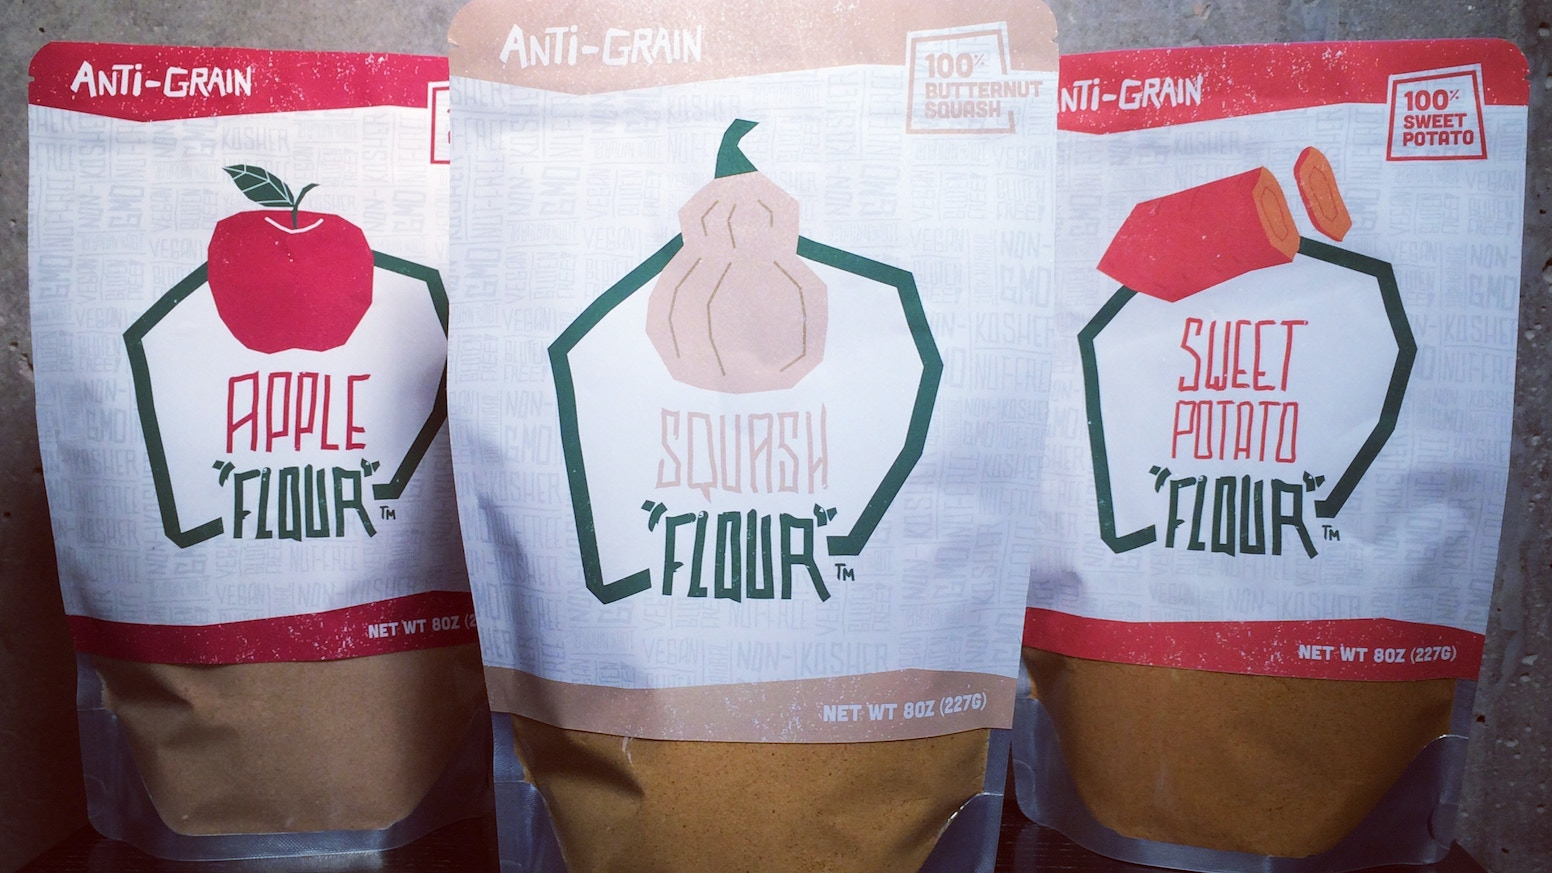 Flours made solely out of domestically grown fruits and vegetables. Made in the U.S.A. Grain-free. Gluten-free. Allergen-Free. Non-GMO.